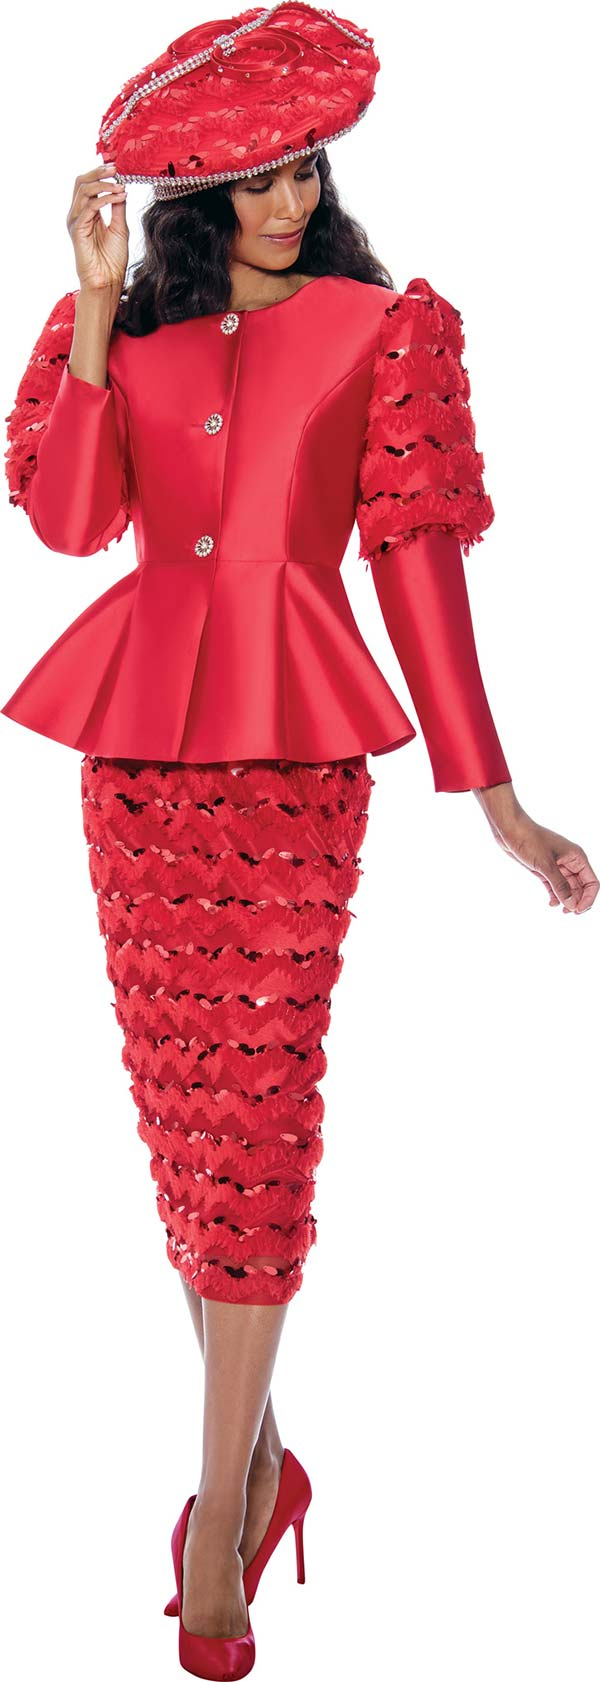 GMI G8172-Red - Womens Peplum Jacket And Skirt Suit Featuring Cut-Out Ruffle Design